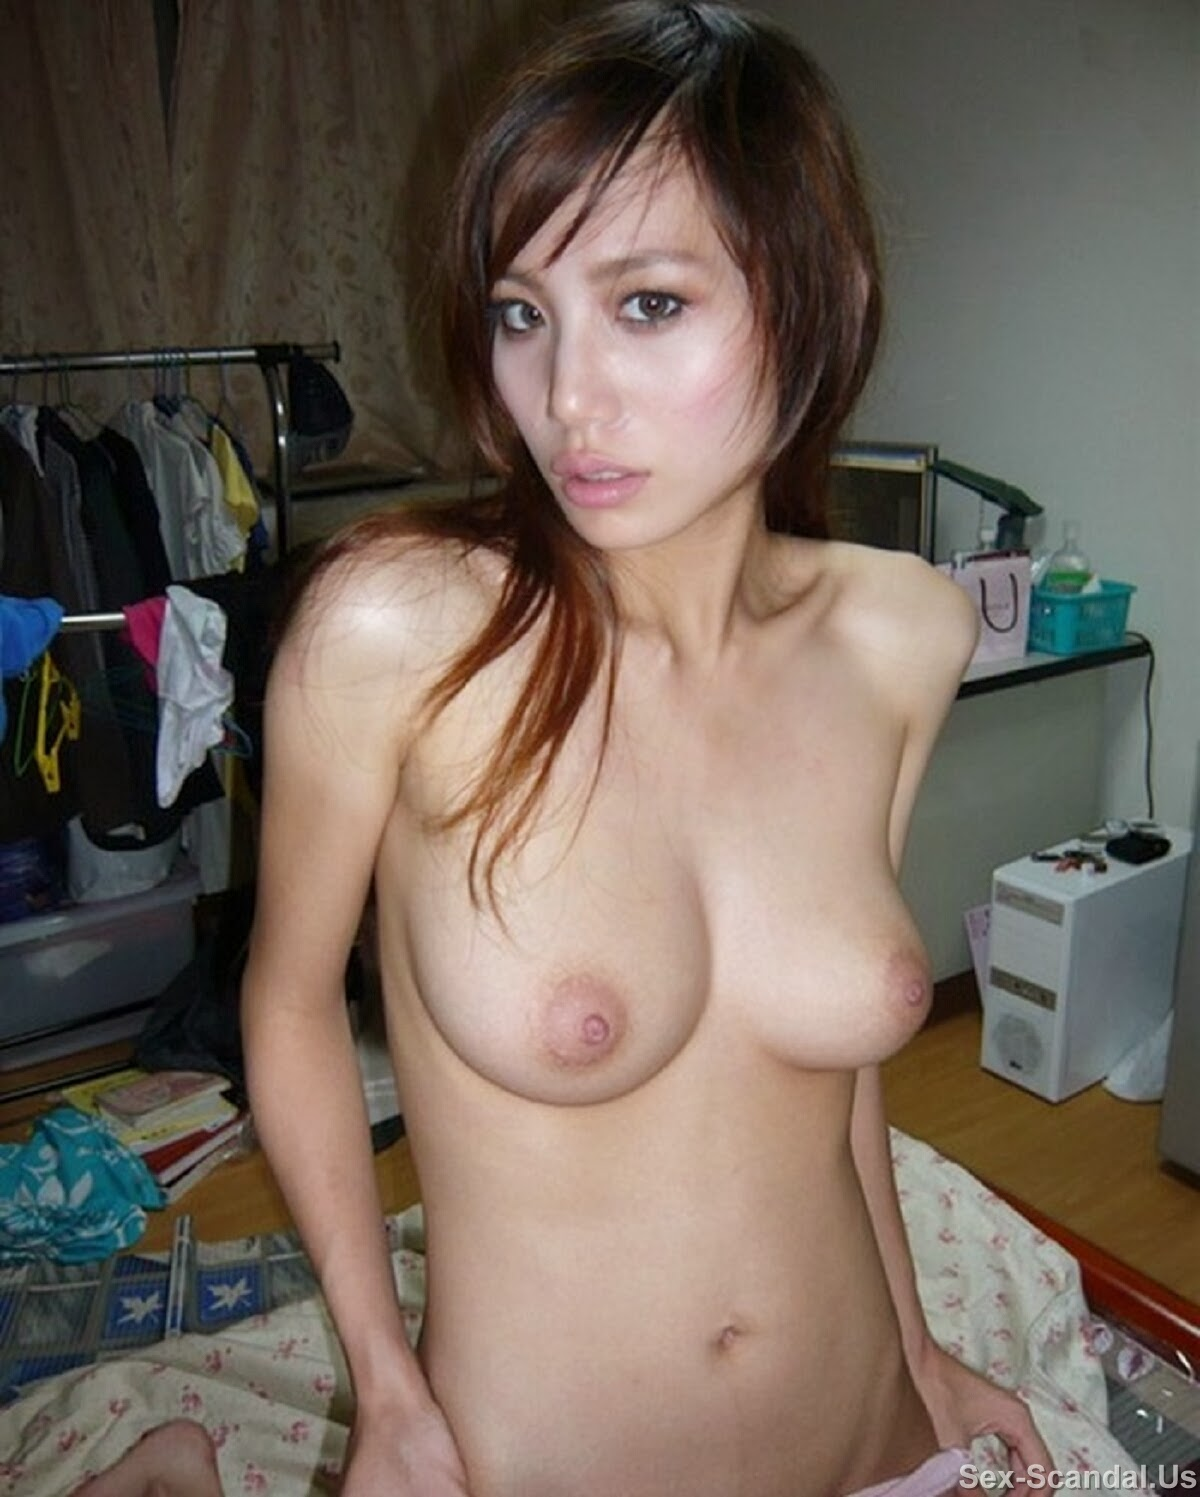 taiwan girl sex picture